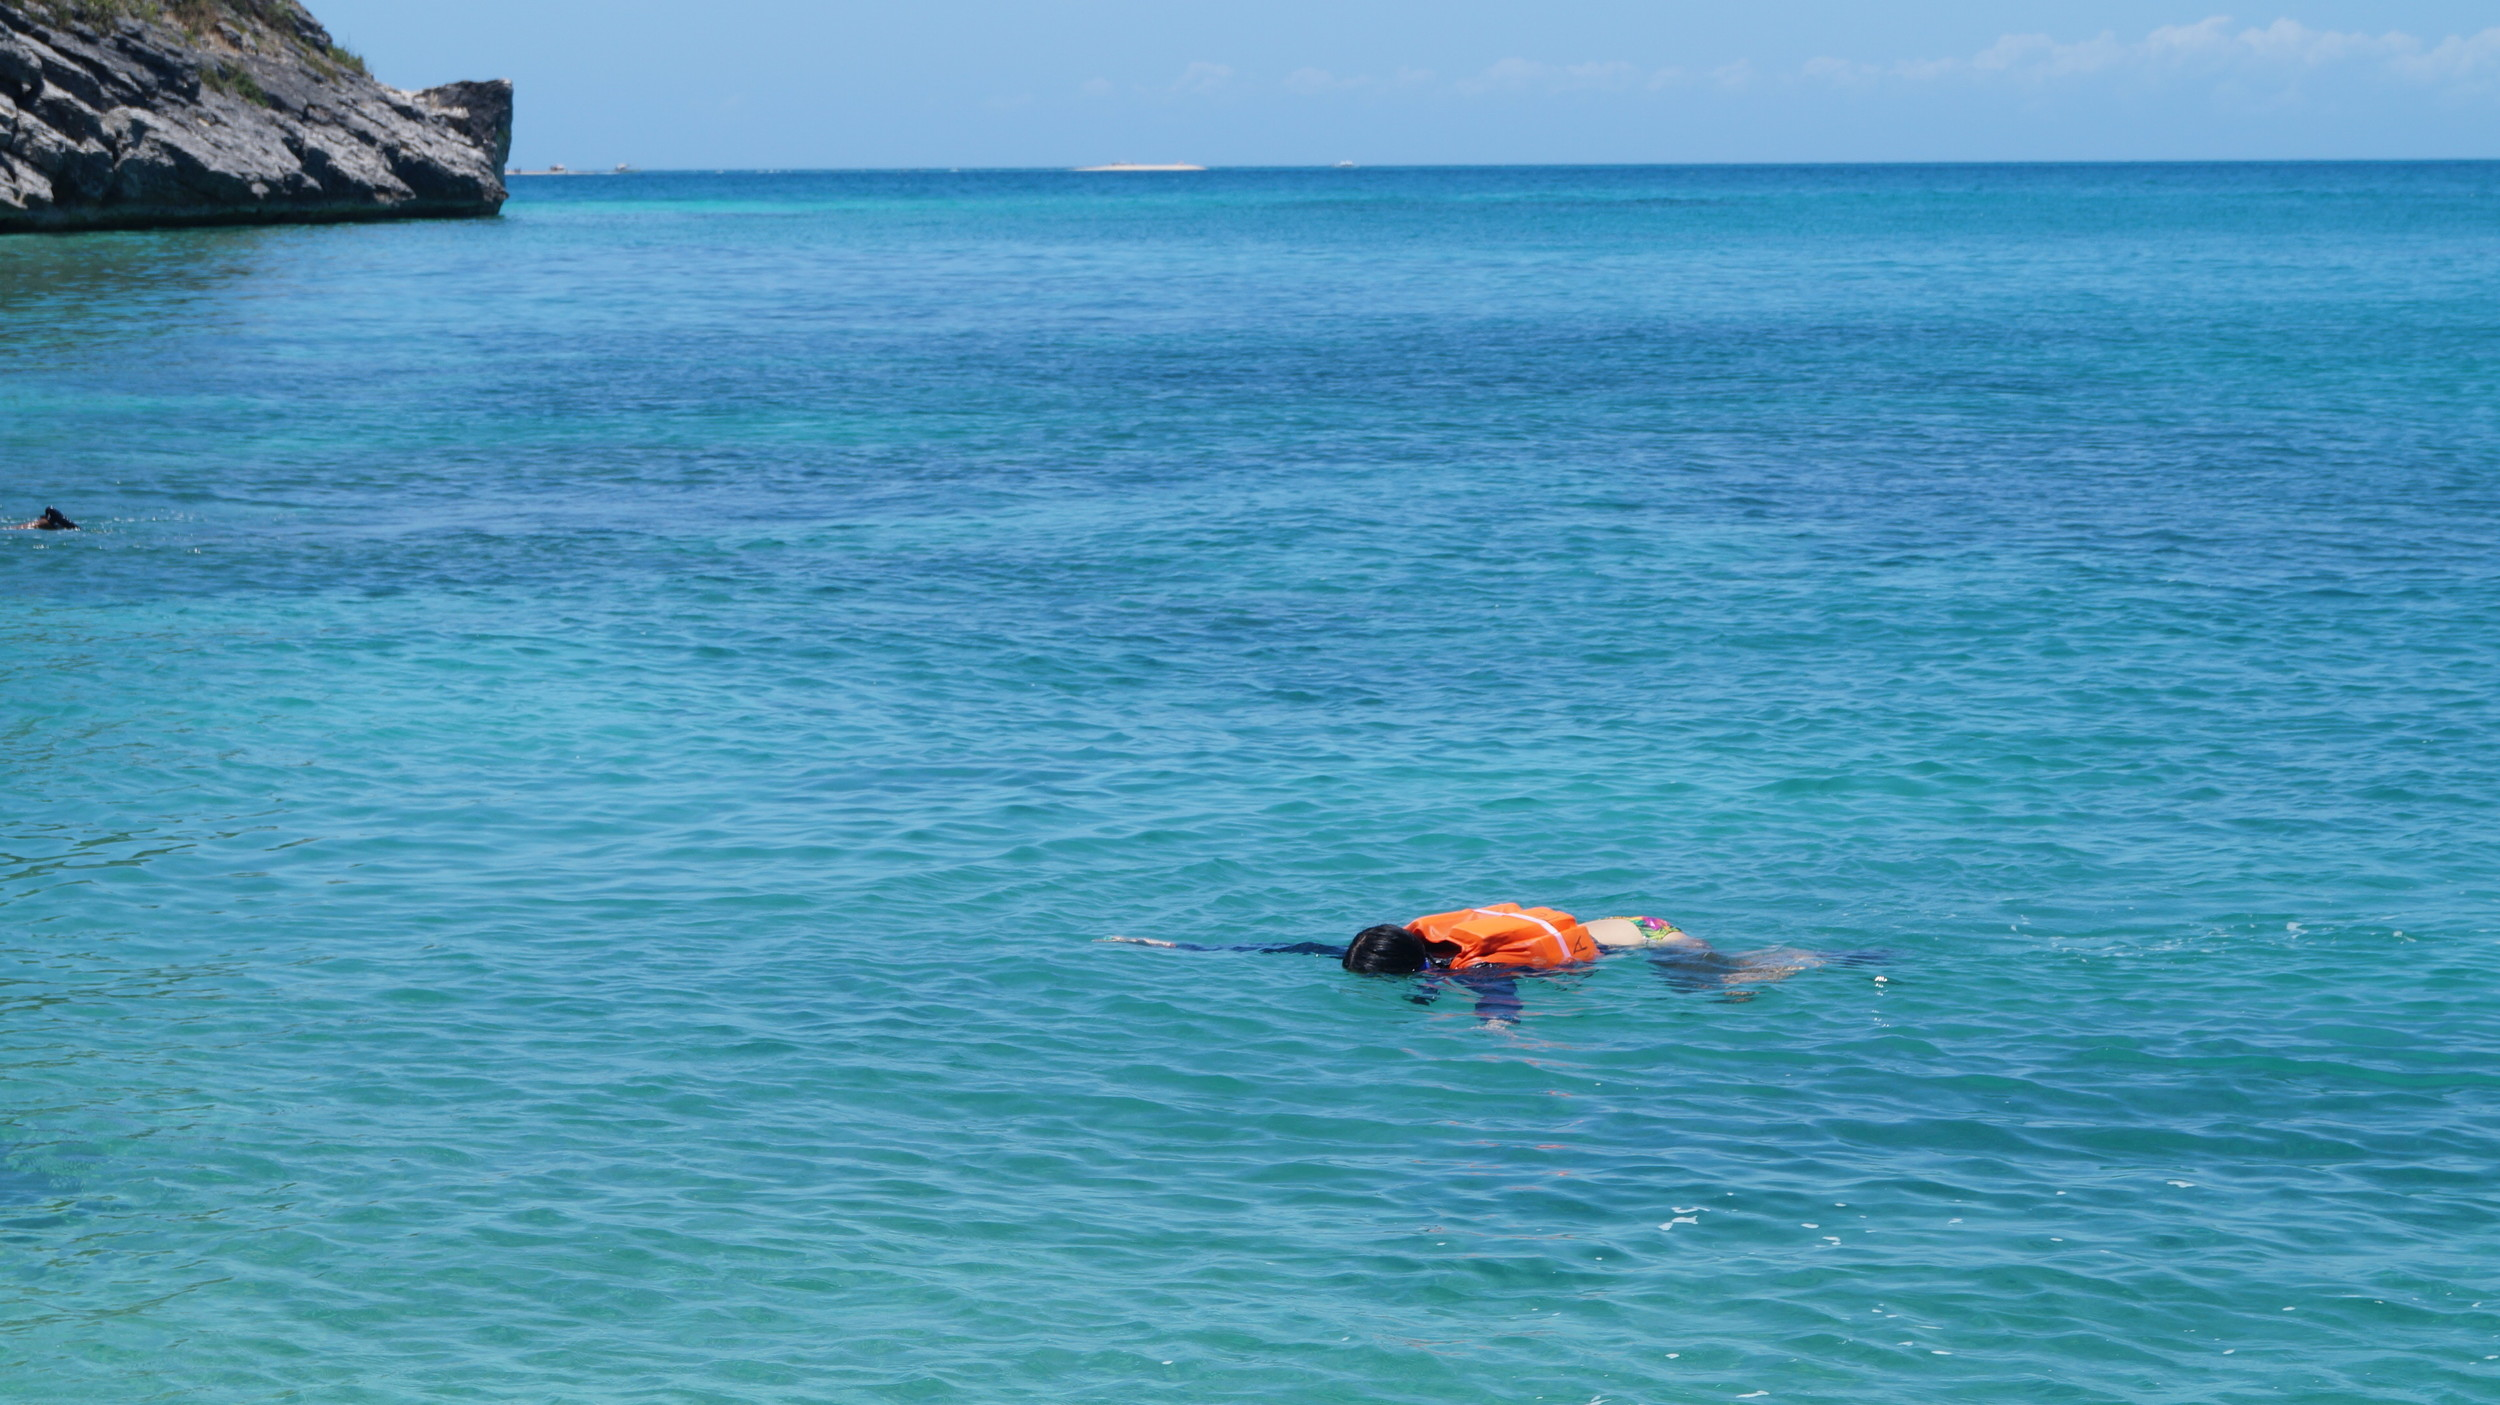 Philippines, Islas De Gigantes - Antonia Island - illumelation